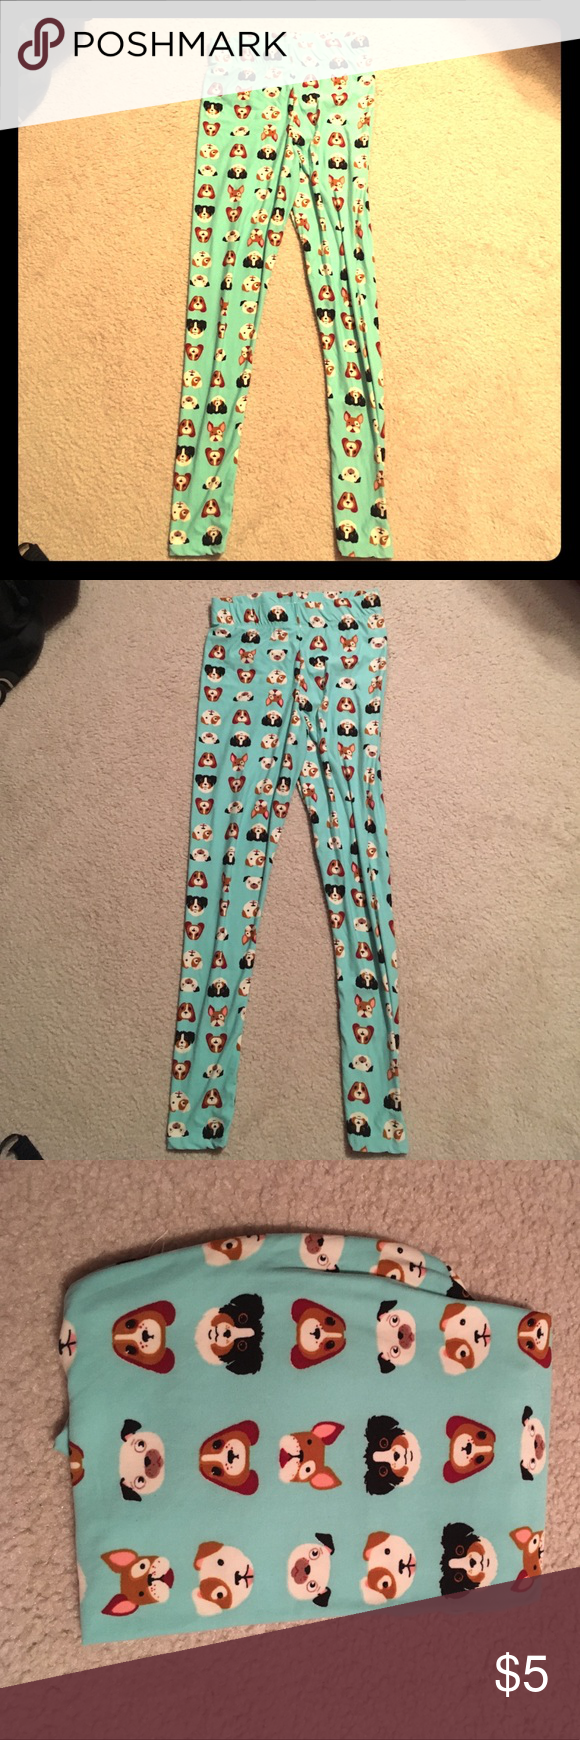 Teal Super Soft Cute Dog Print Leggins Rue 21 Teal Super Soft Cute Dog Print Leggins Rue 21 Rue 21 Pants Leggings